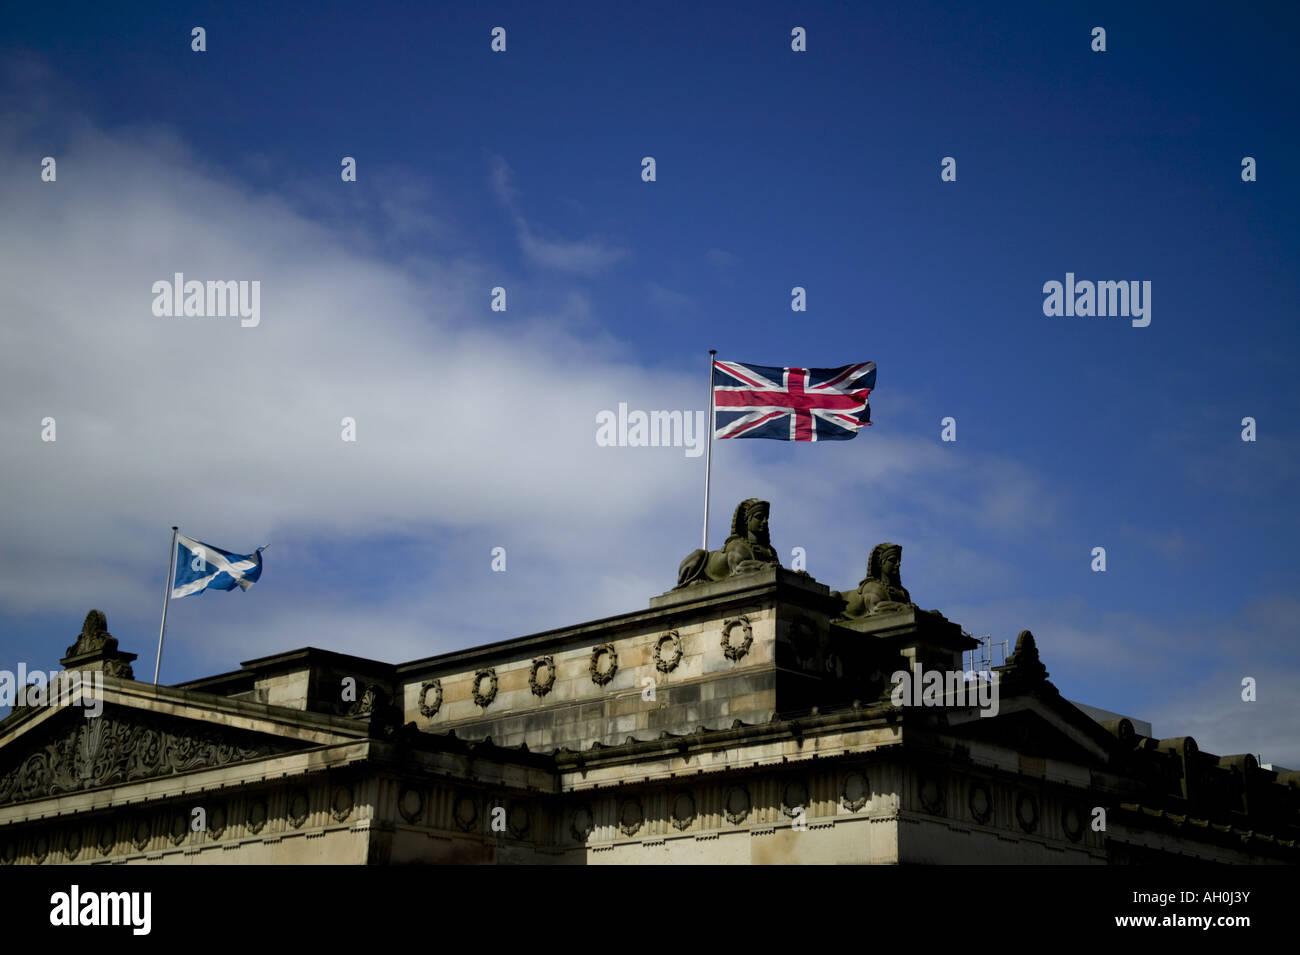 Saltire and Union flags fluttering in the breeze, The Mound, Edinburgh, UK, Scotland, Europe - Stock Image